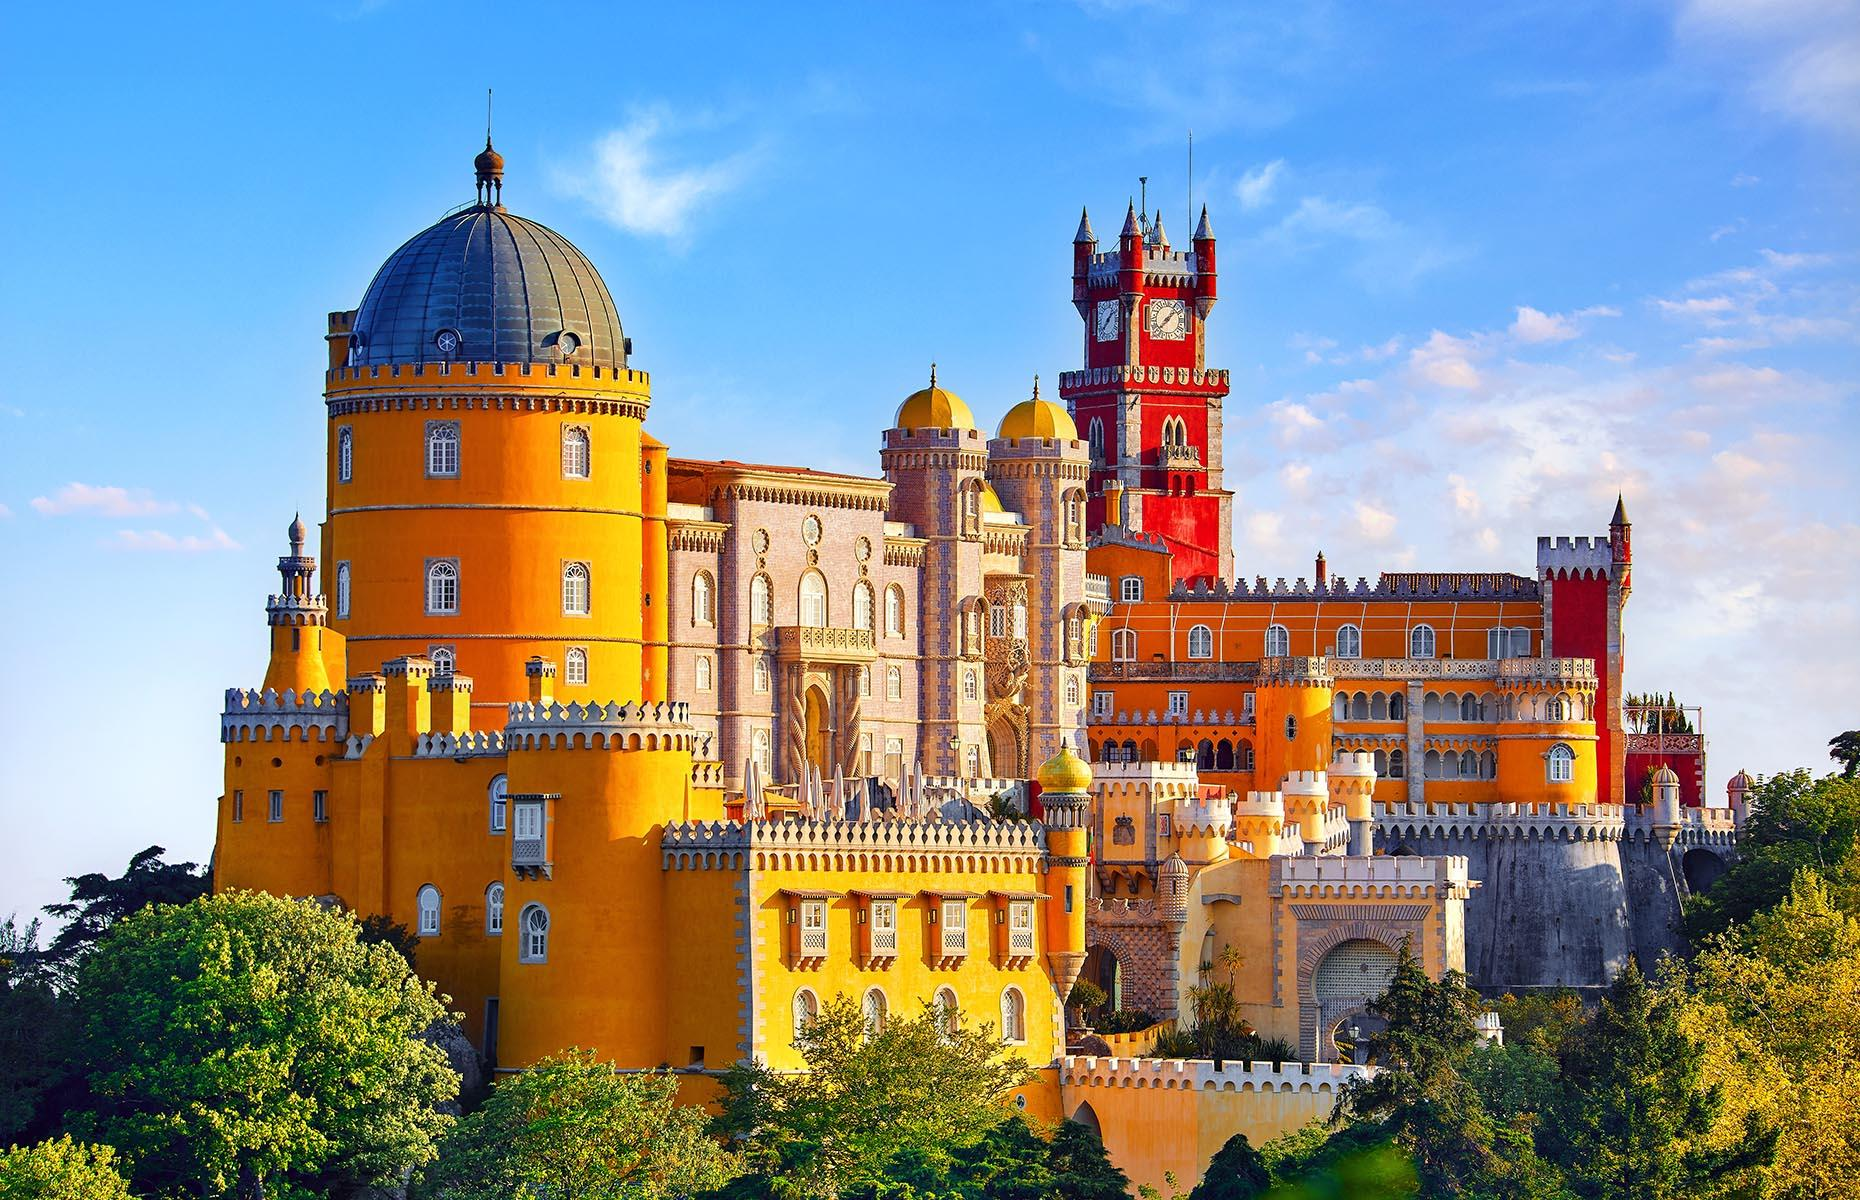 Slide 26 of 61: It might be called a palace, but it is in fact a castle, and few are so heart-flutteringly pretty as Pena Palace, whose butter-yellow turrets and brick-red towers rise above the treetops in hilly Sintra, just outside Lisbon. The multicolored beauty, an example of 19th-century Romanticism, was commissioned by King Ferdinand II and completed in 1854, and has been home to Portuguese royals through the years.